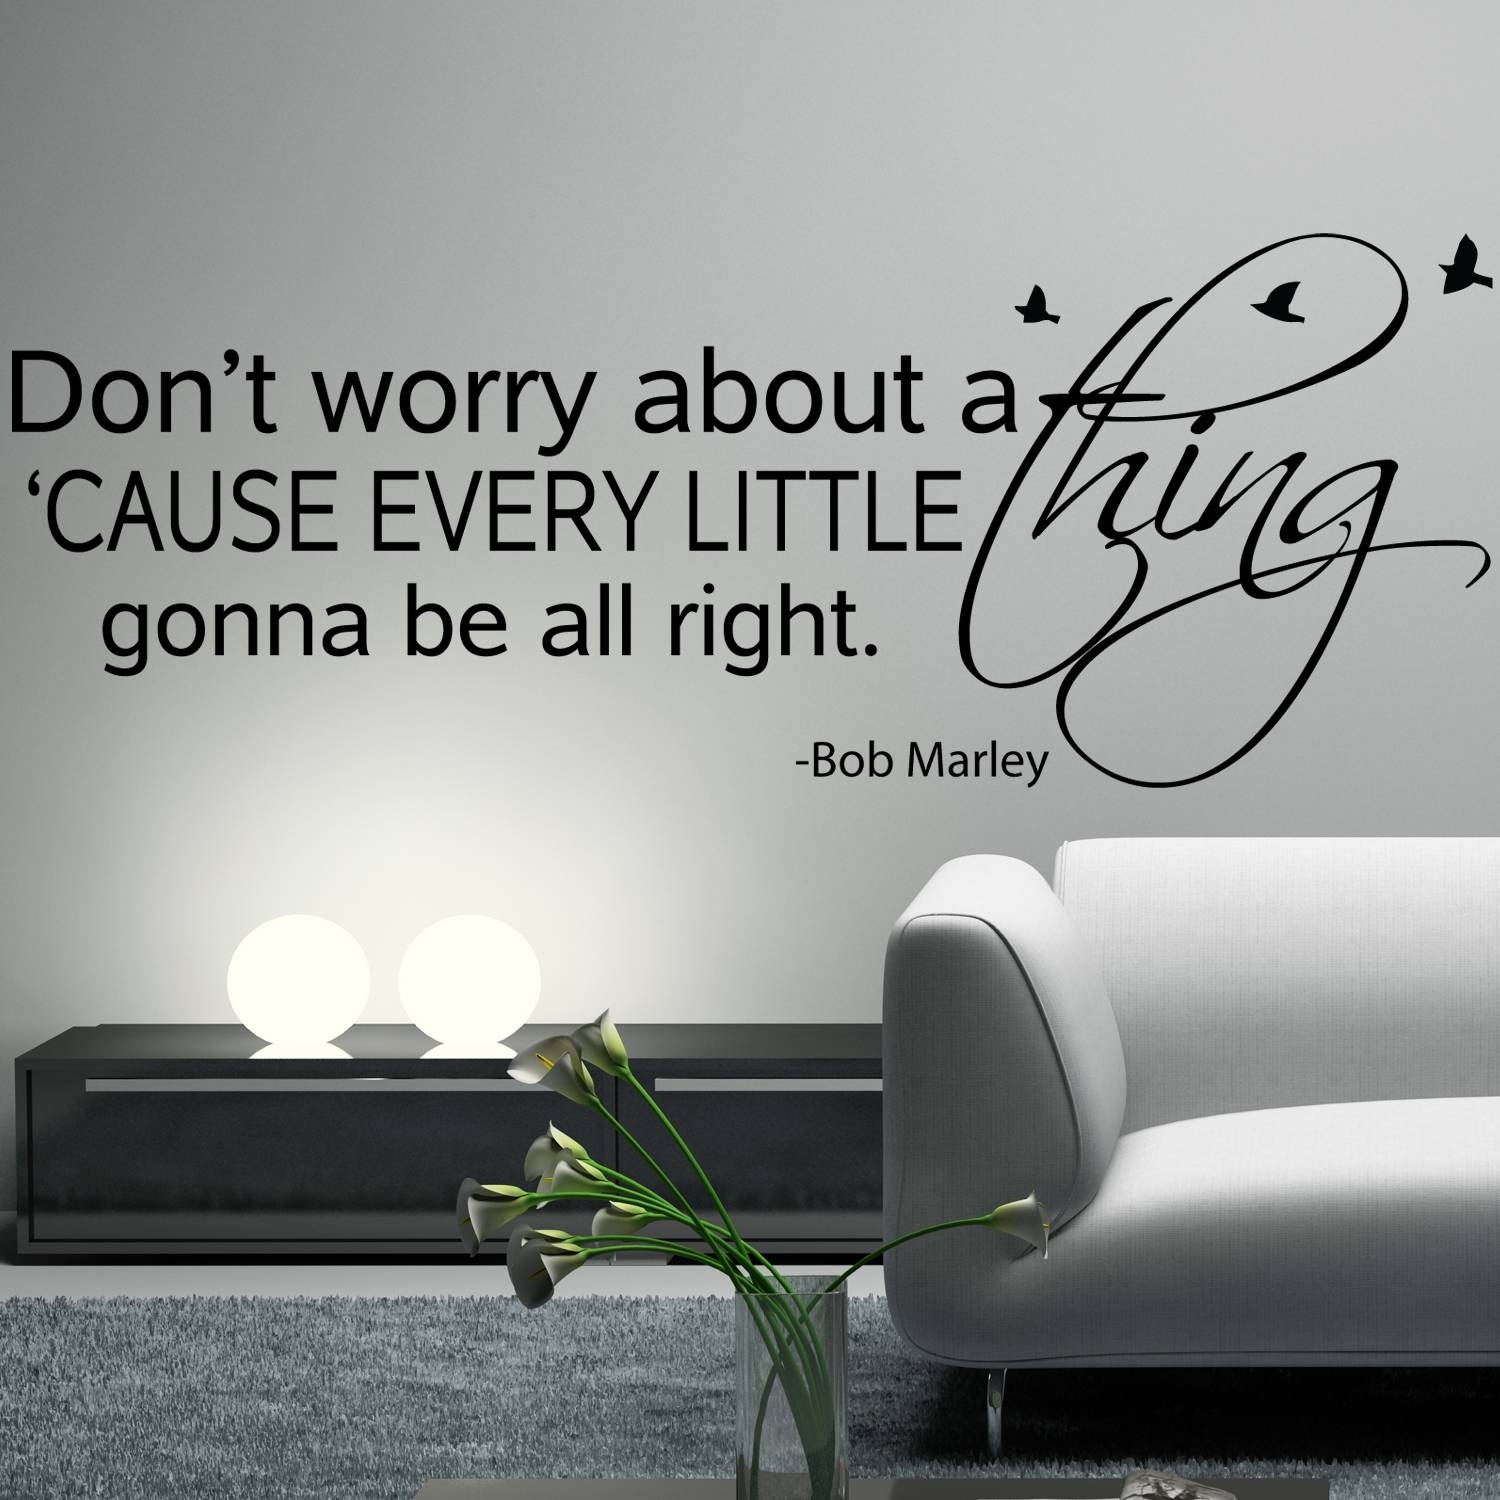 Bob Marley Wall Decal Sticker Art Vinyl Quote Don't Worry About A Intended For Most Current Bob Marley Wall Art (View 22 of 30)